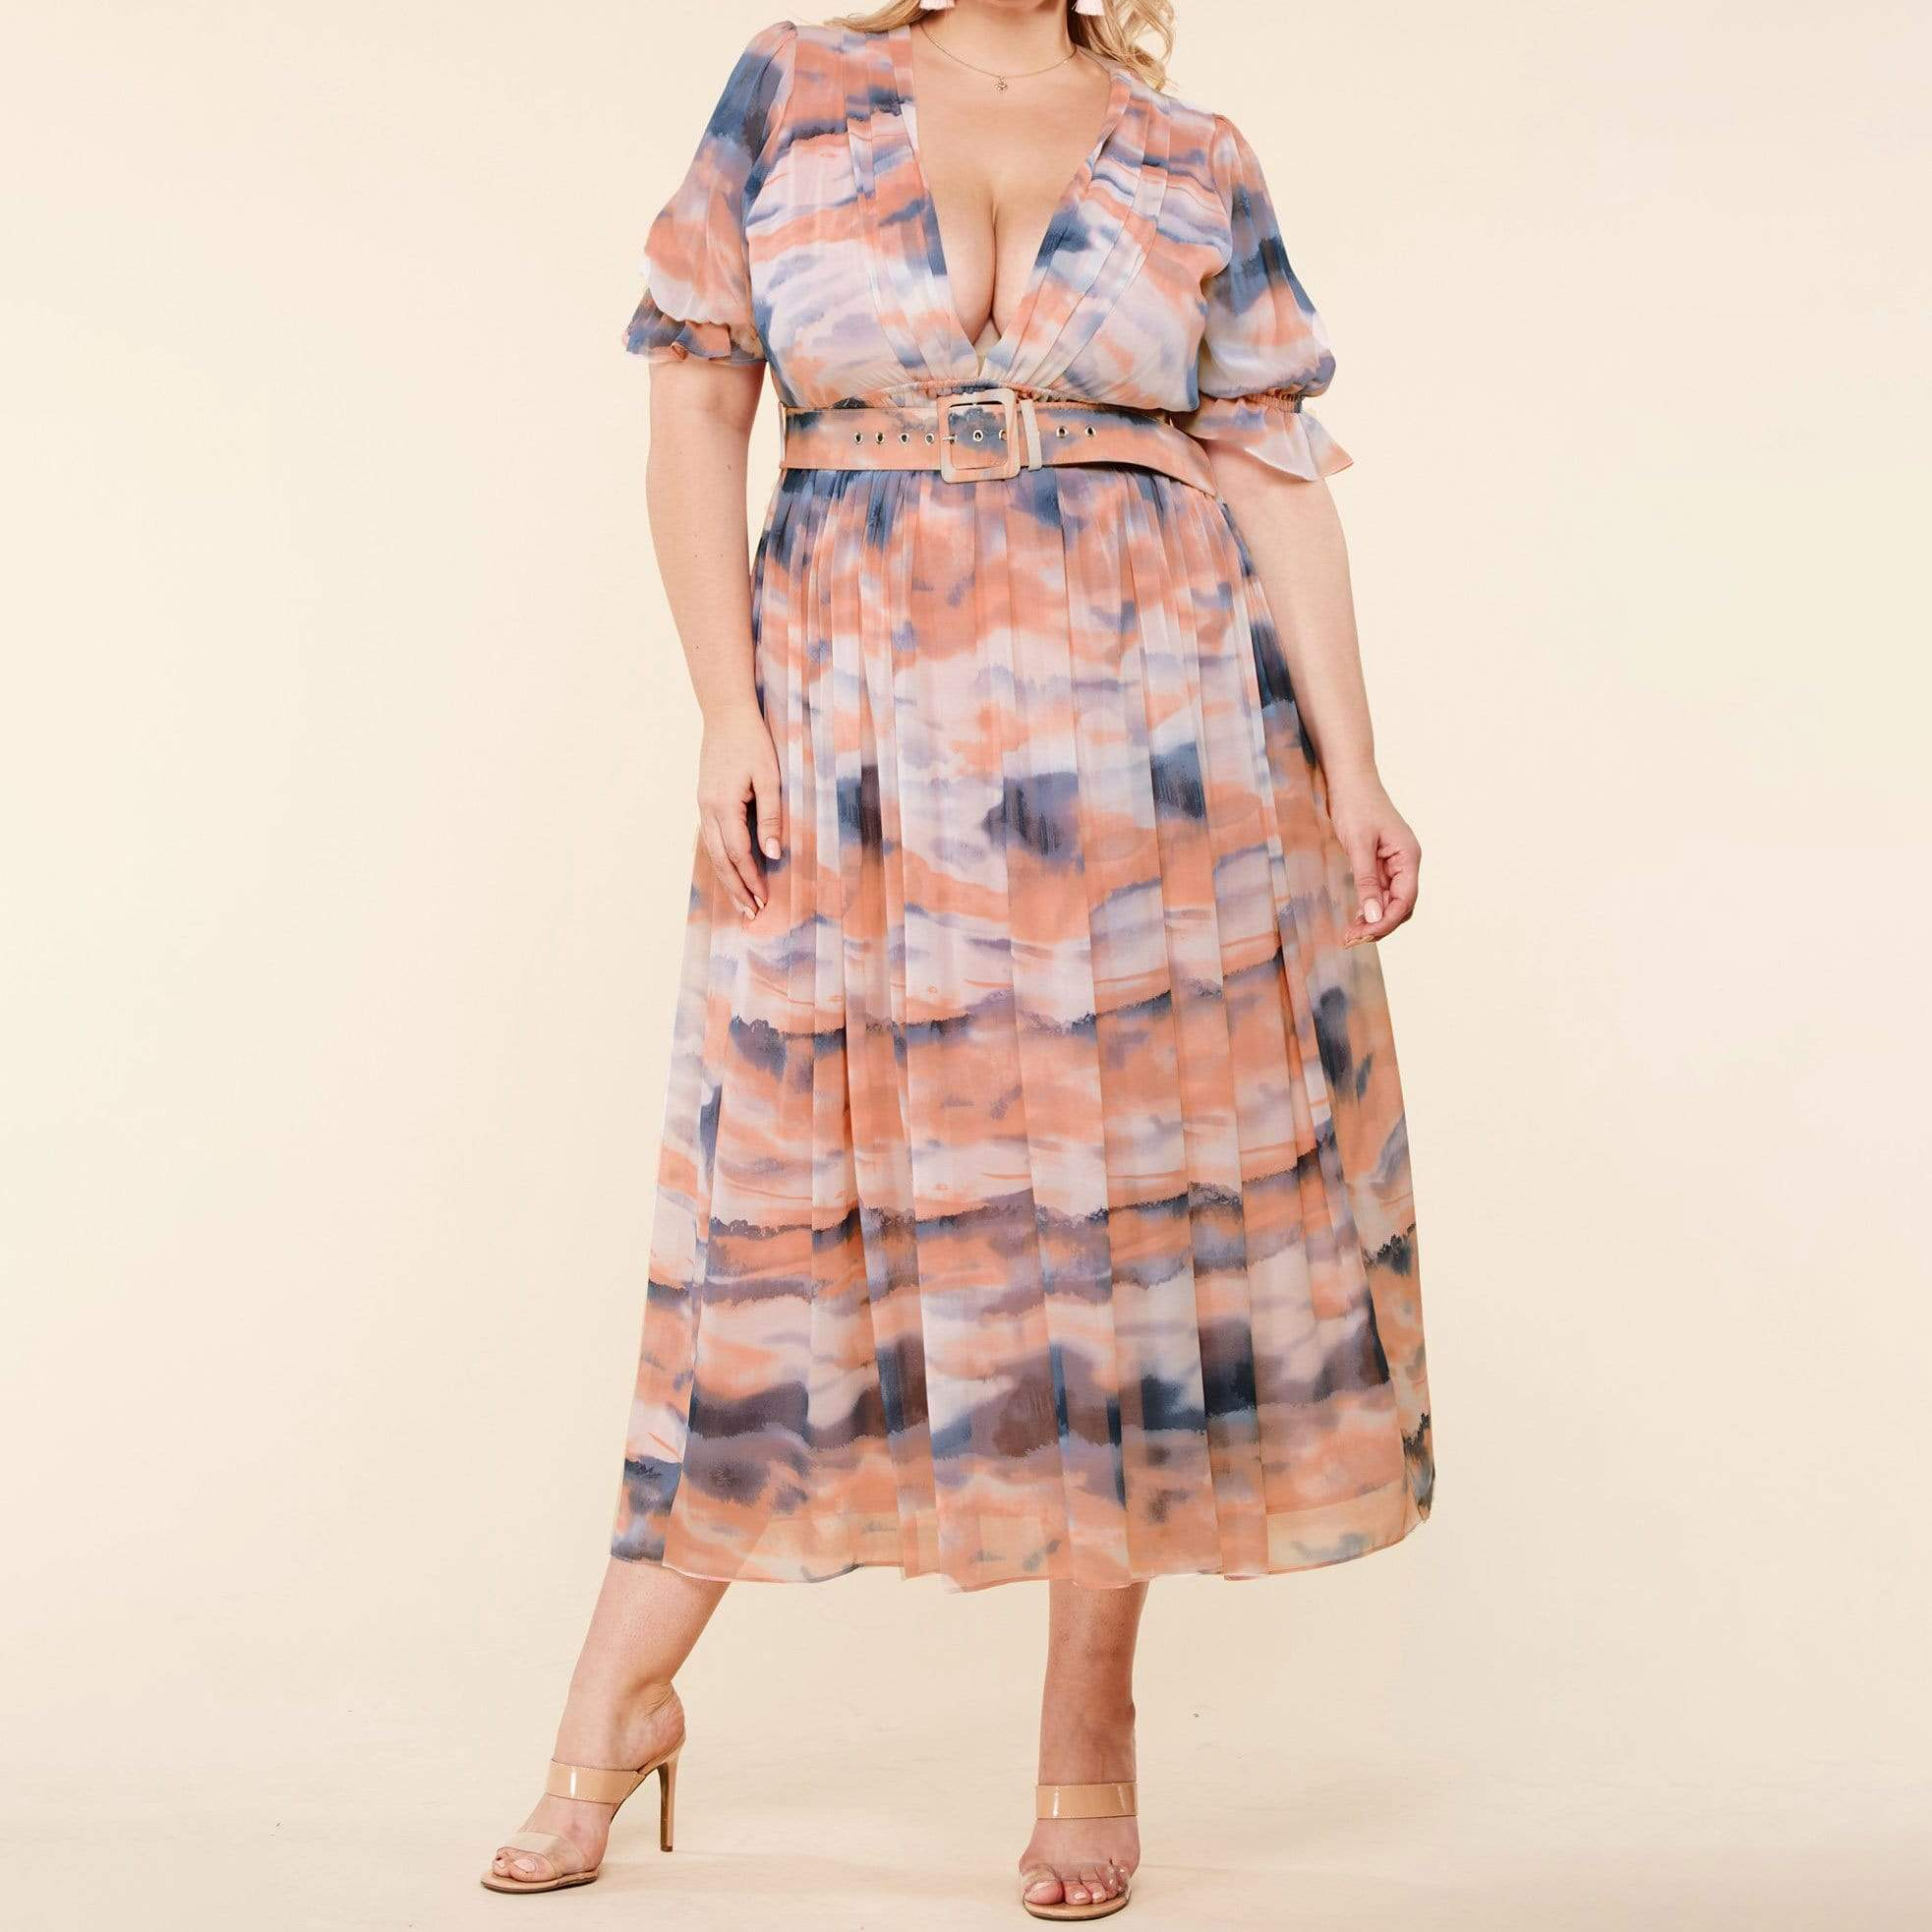 Dipped In Heavenly Dyes Maxi Dress